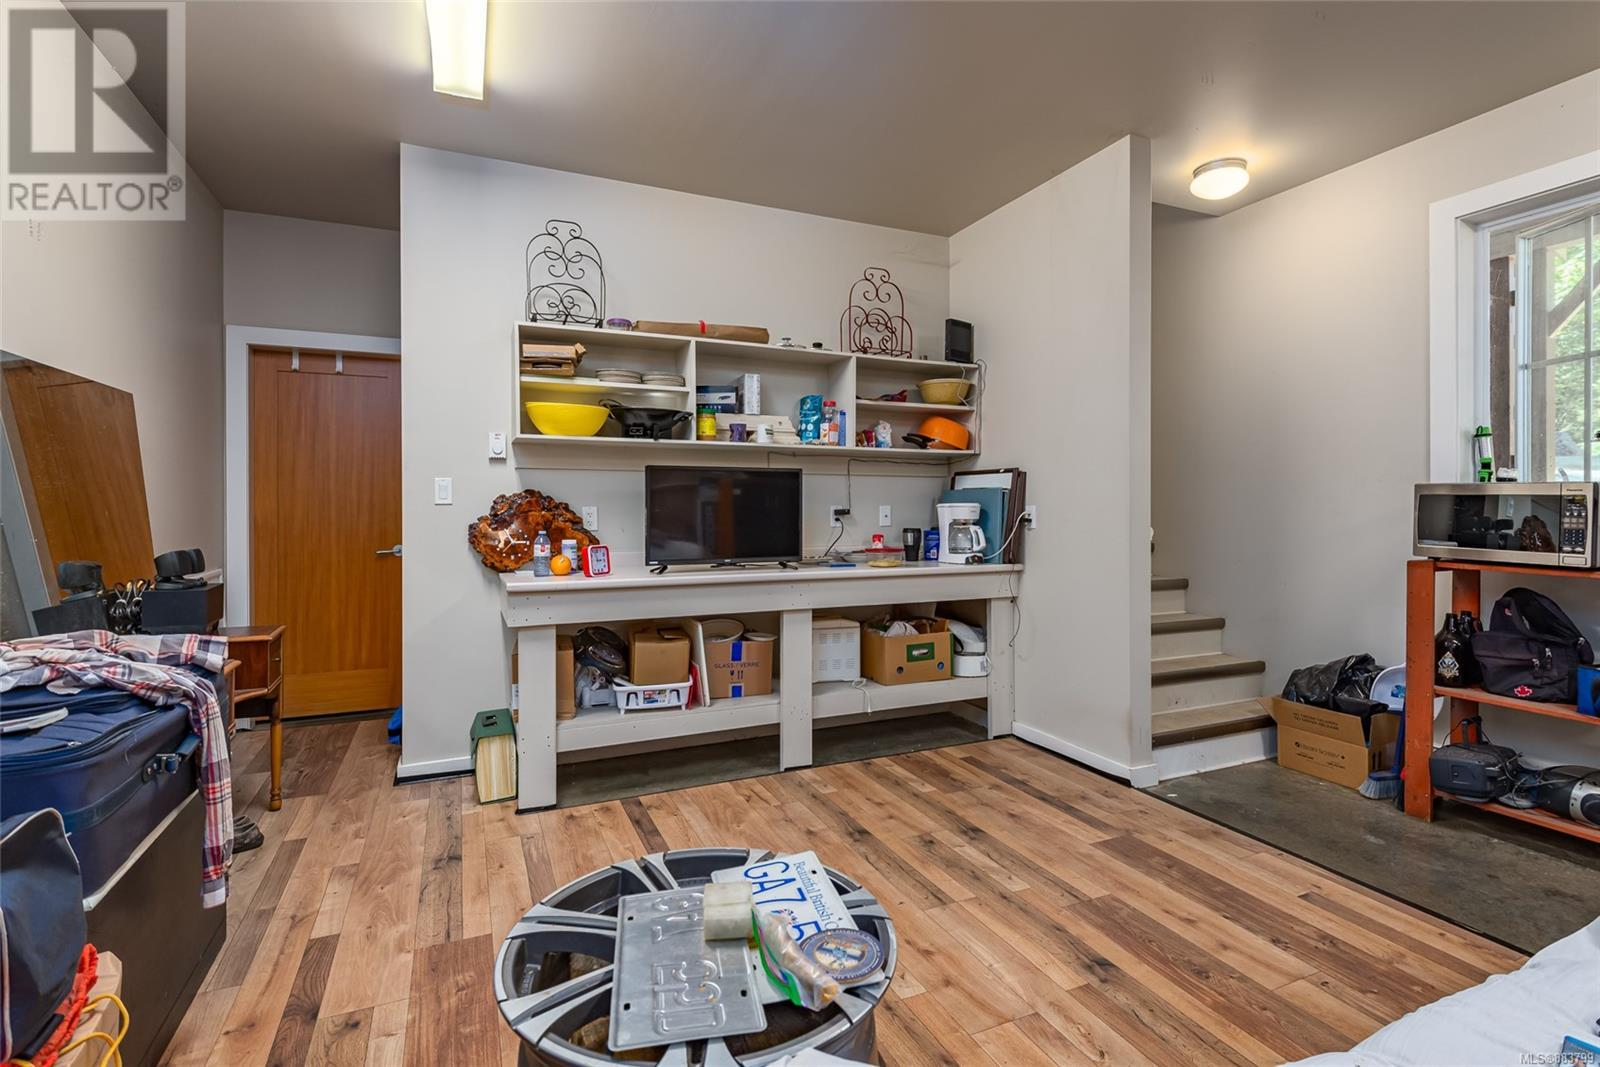 MLS® #883799 - Courtenay House For sale Image #87